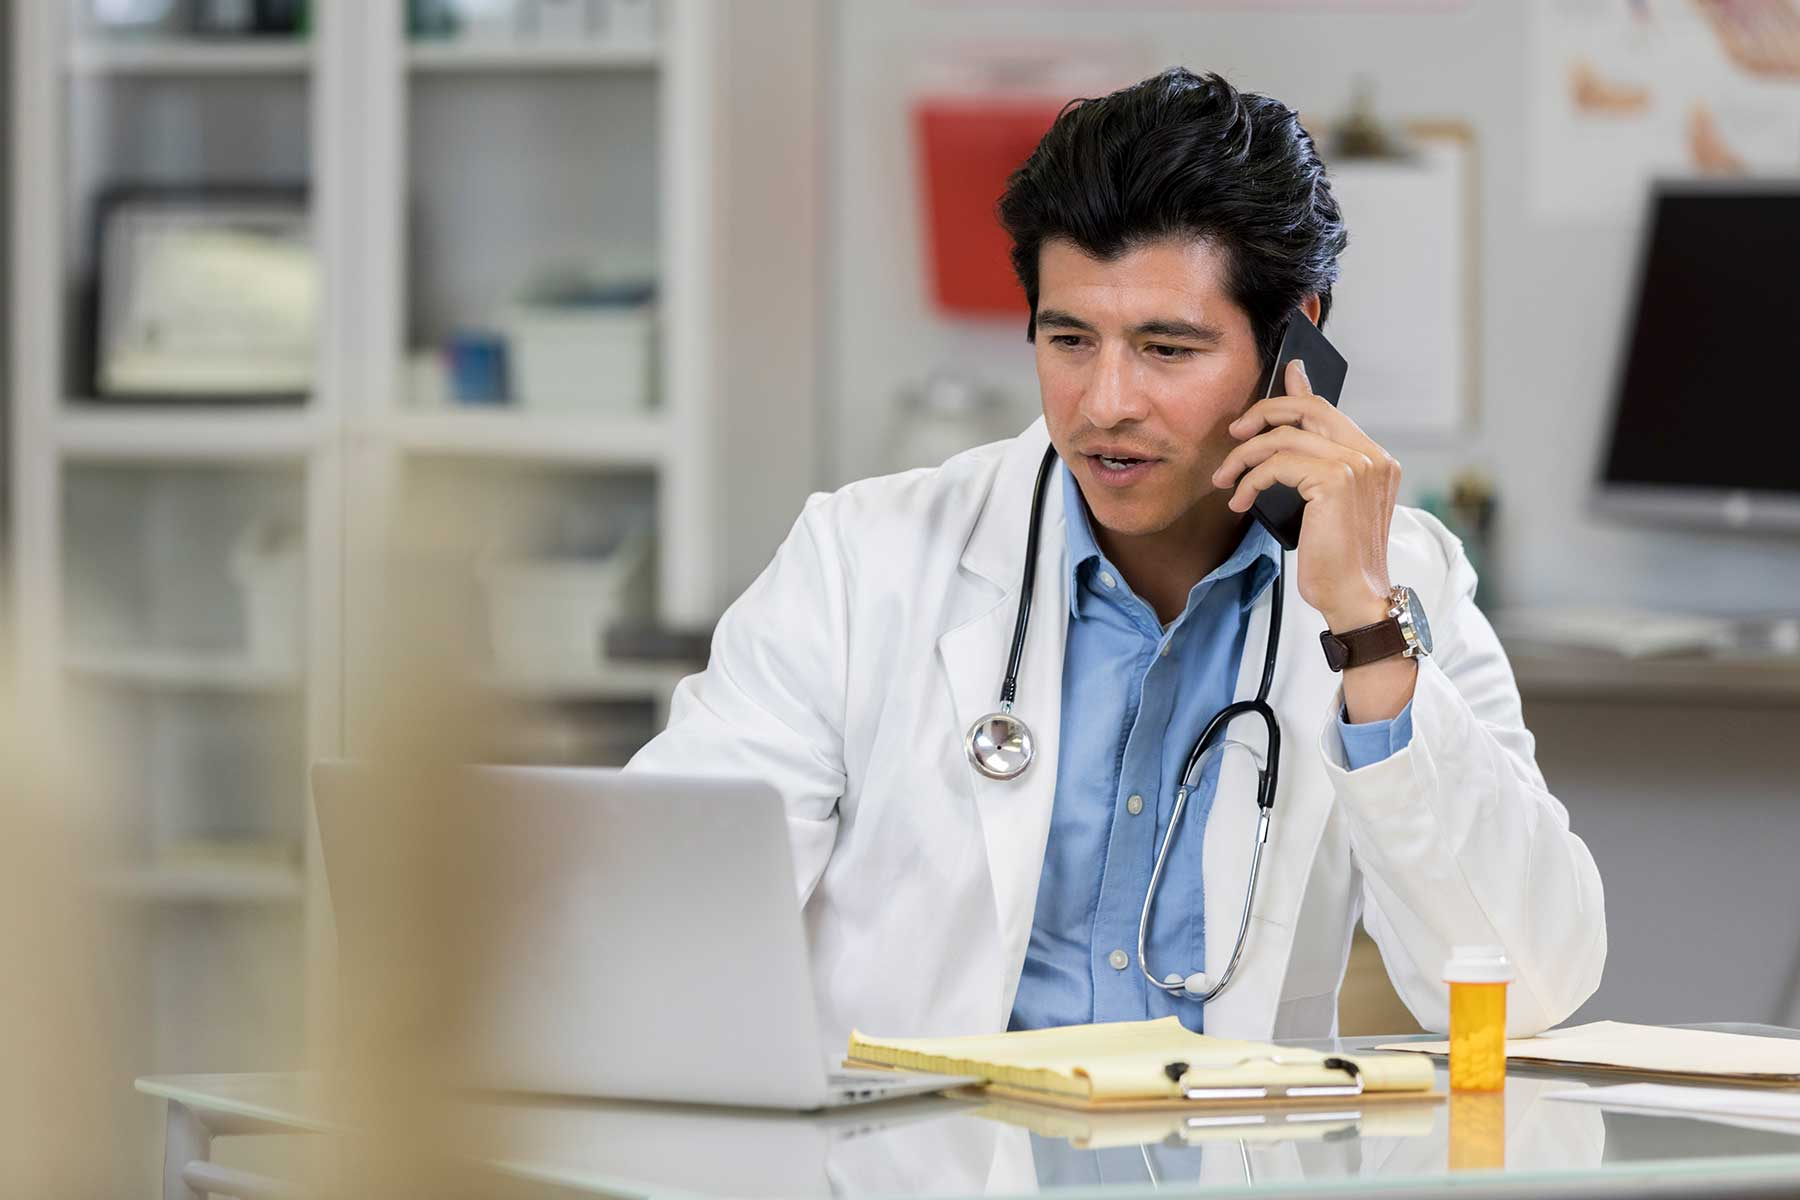 Dr on phone